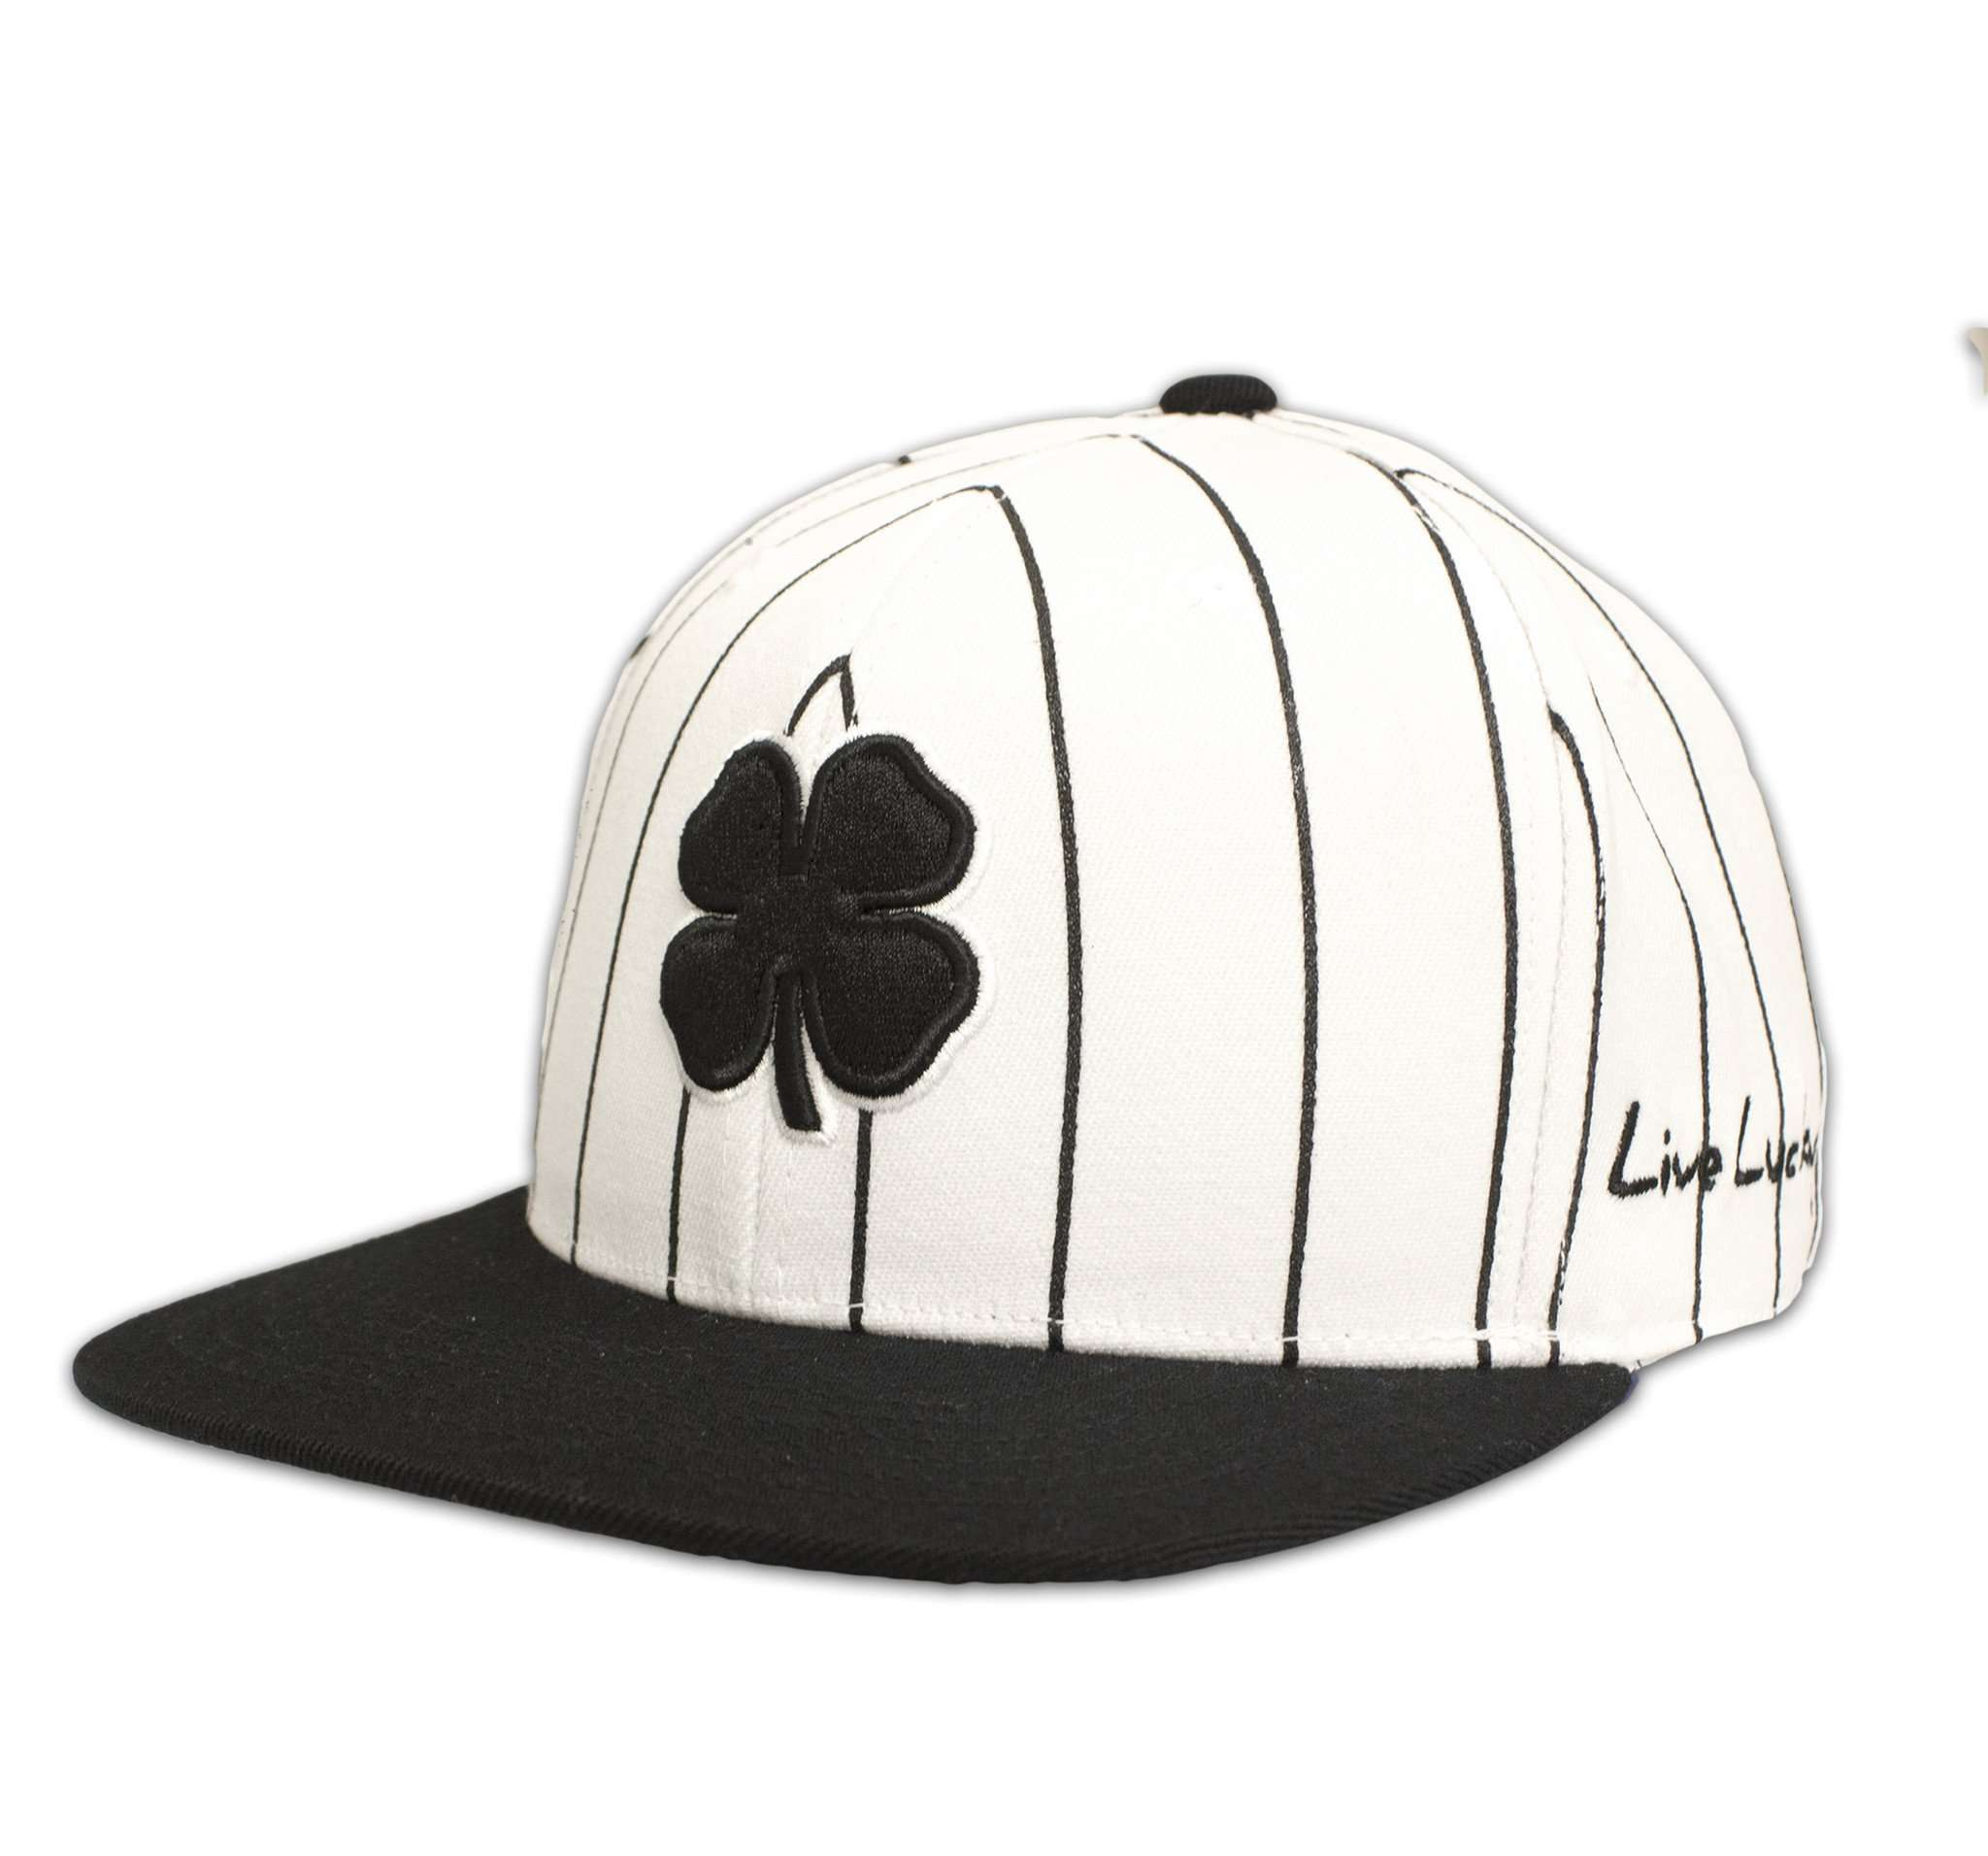 Black Clover Black and White Striped Flat Brim Hat